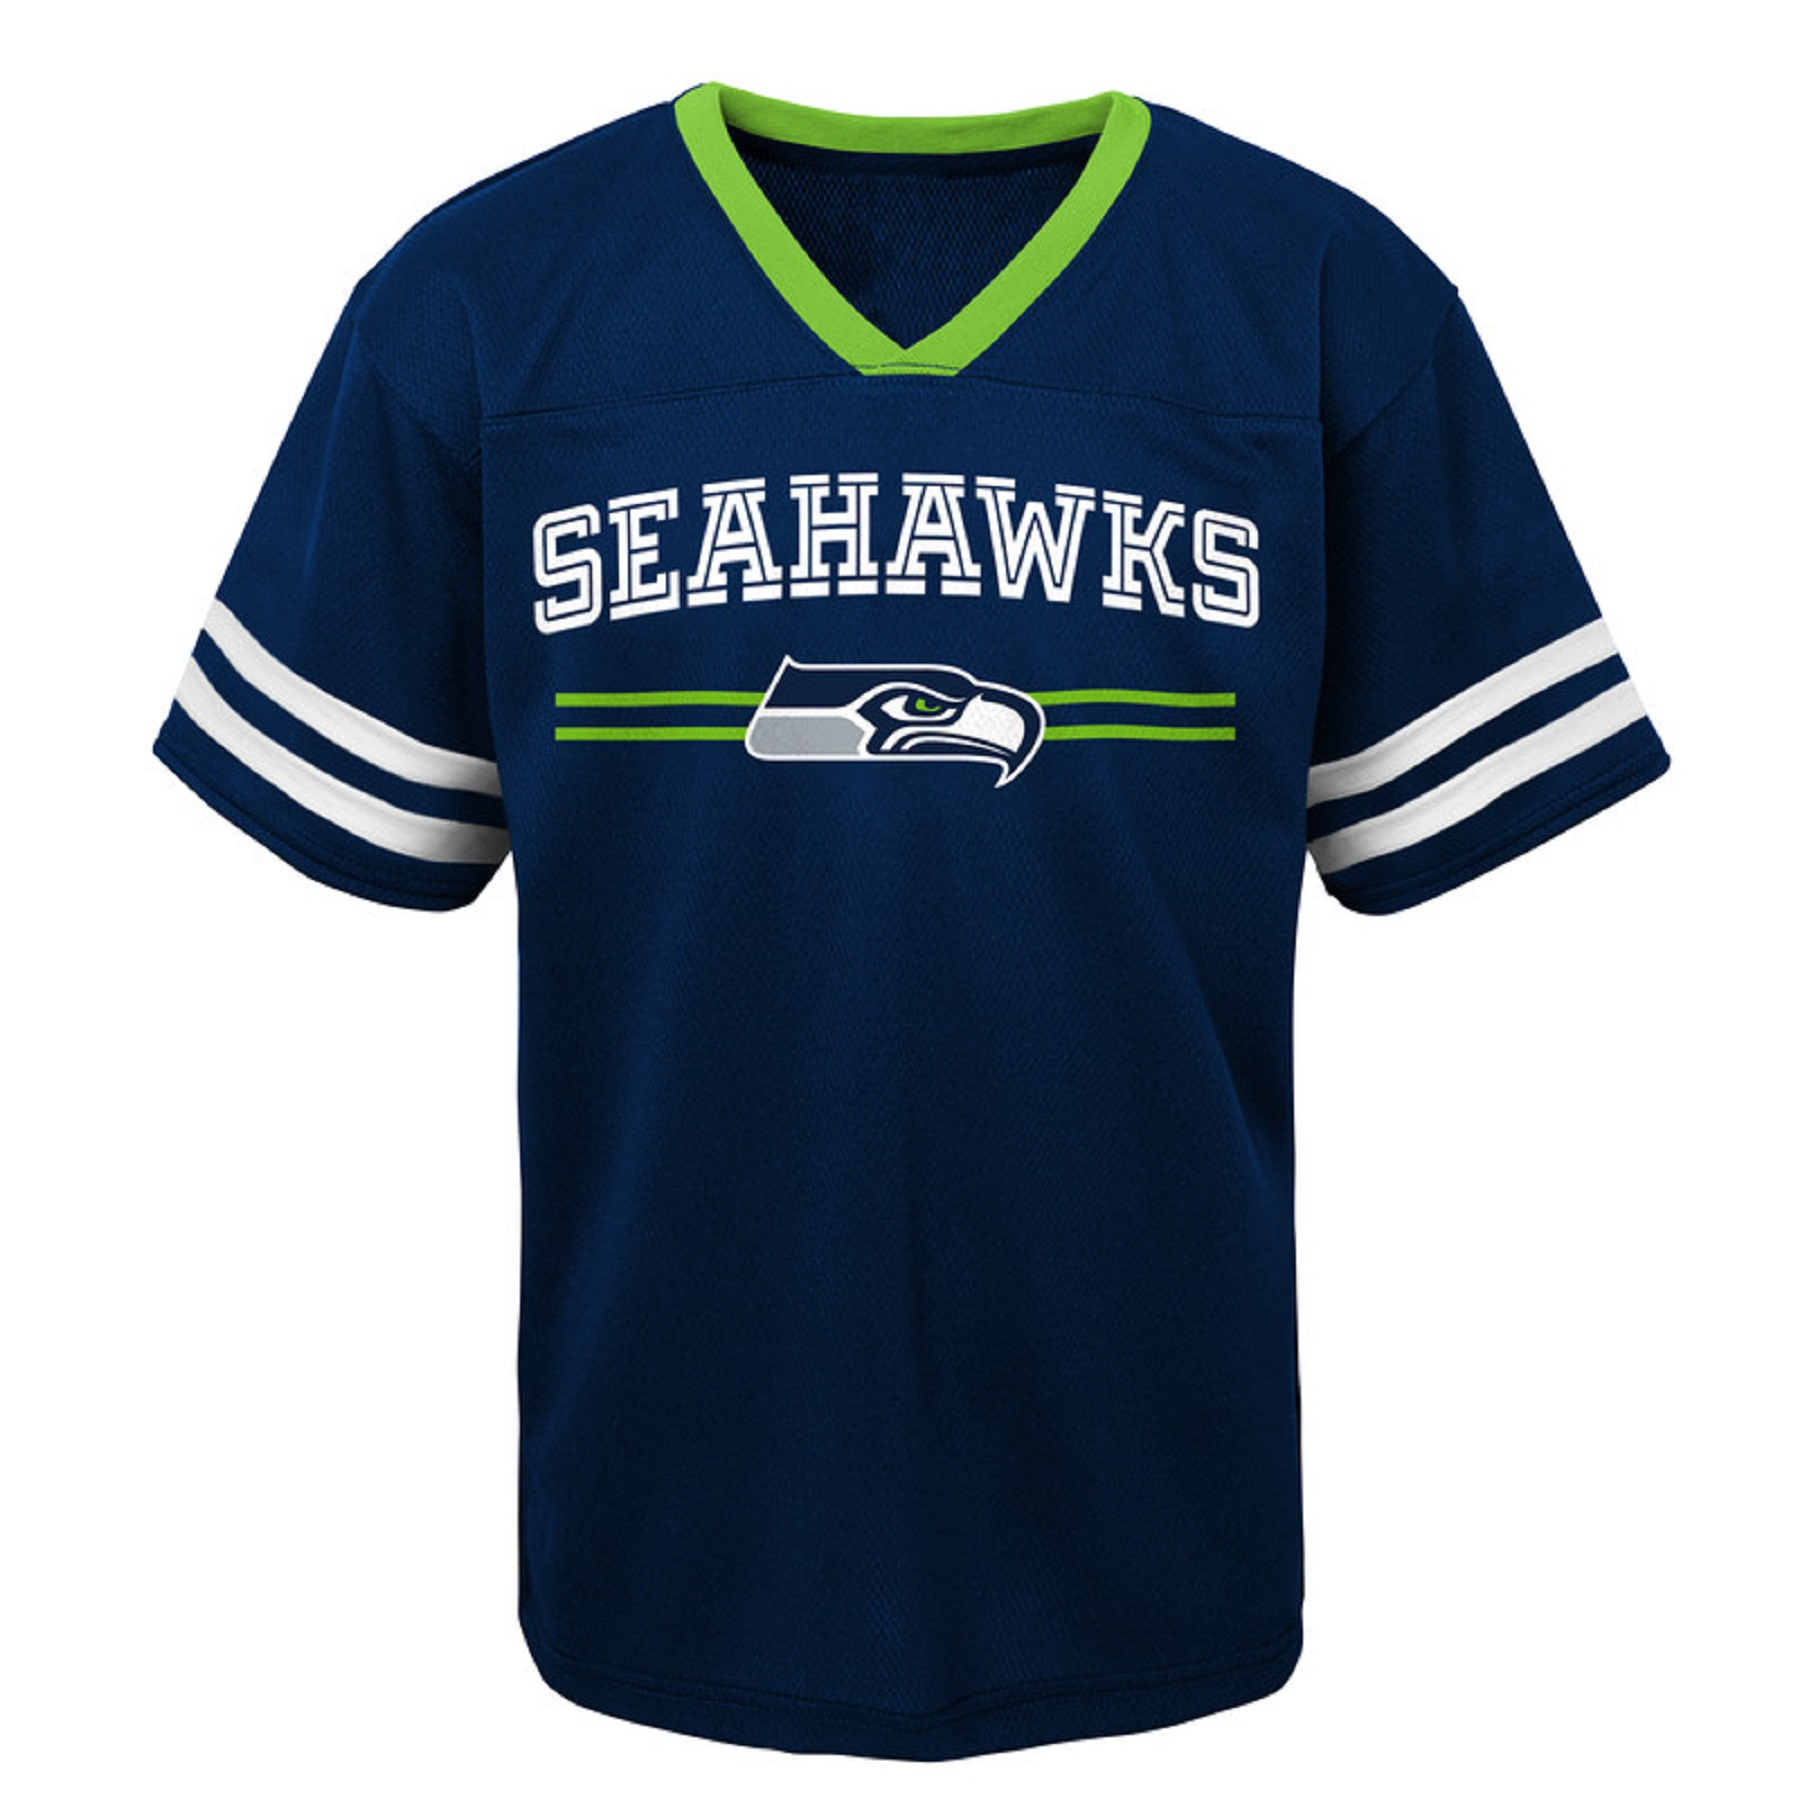 Youth College Navy Seattle Seahawks Mesh V-Neck T-Shirt